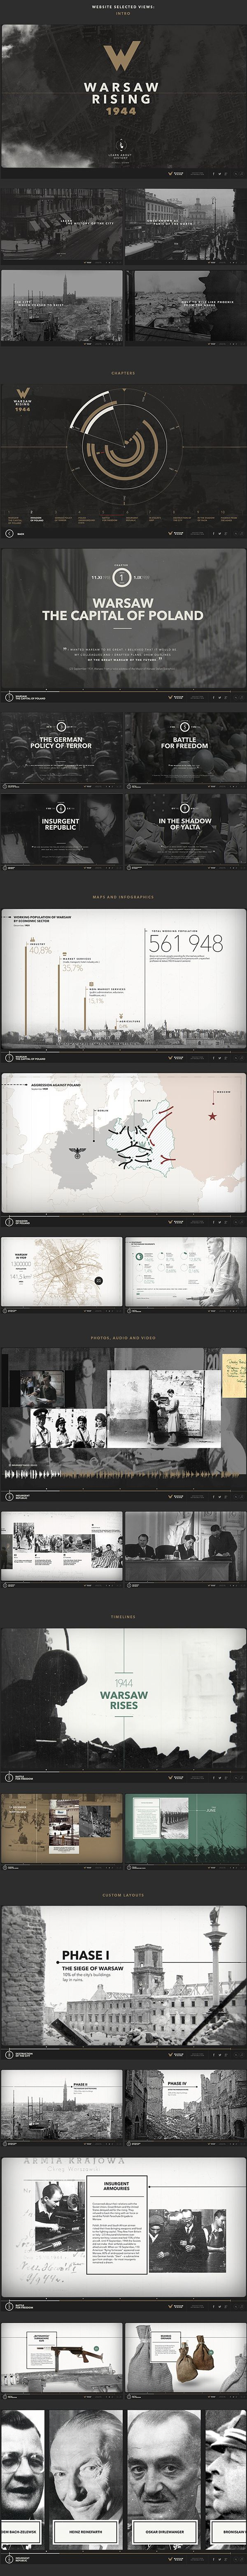 Warsaw Rising on Behance in Web